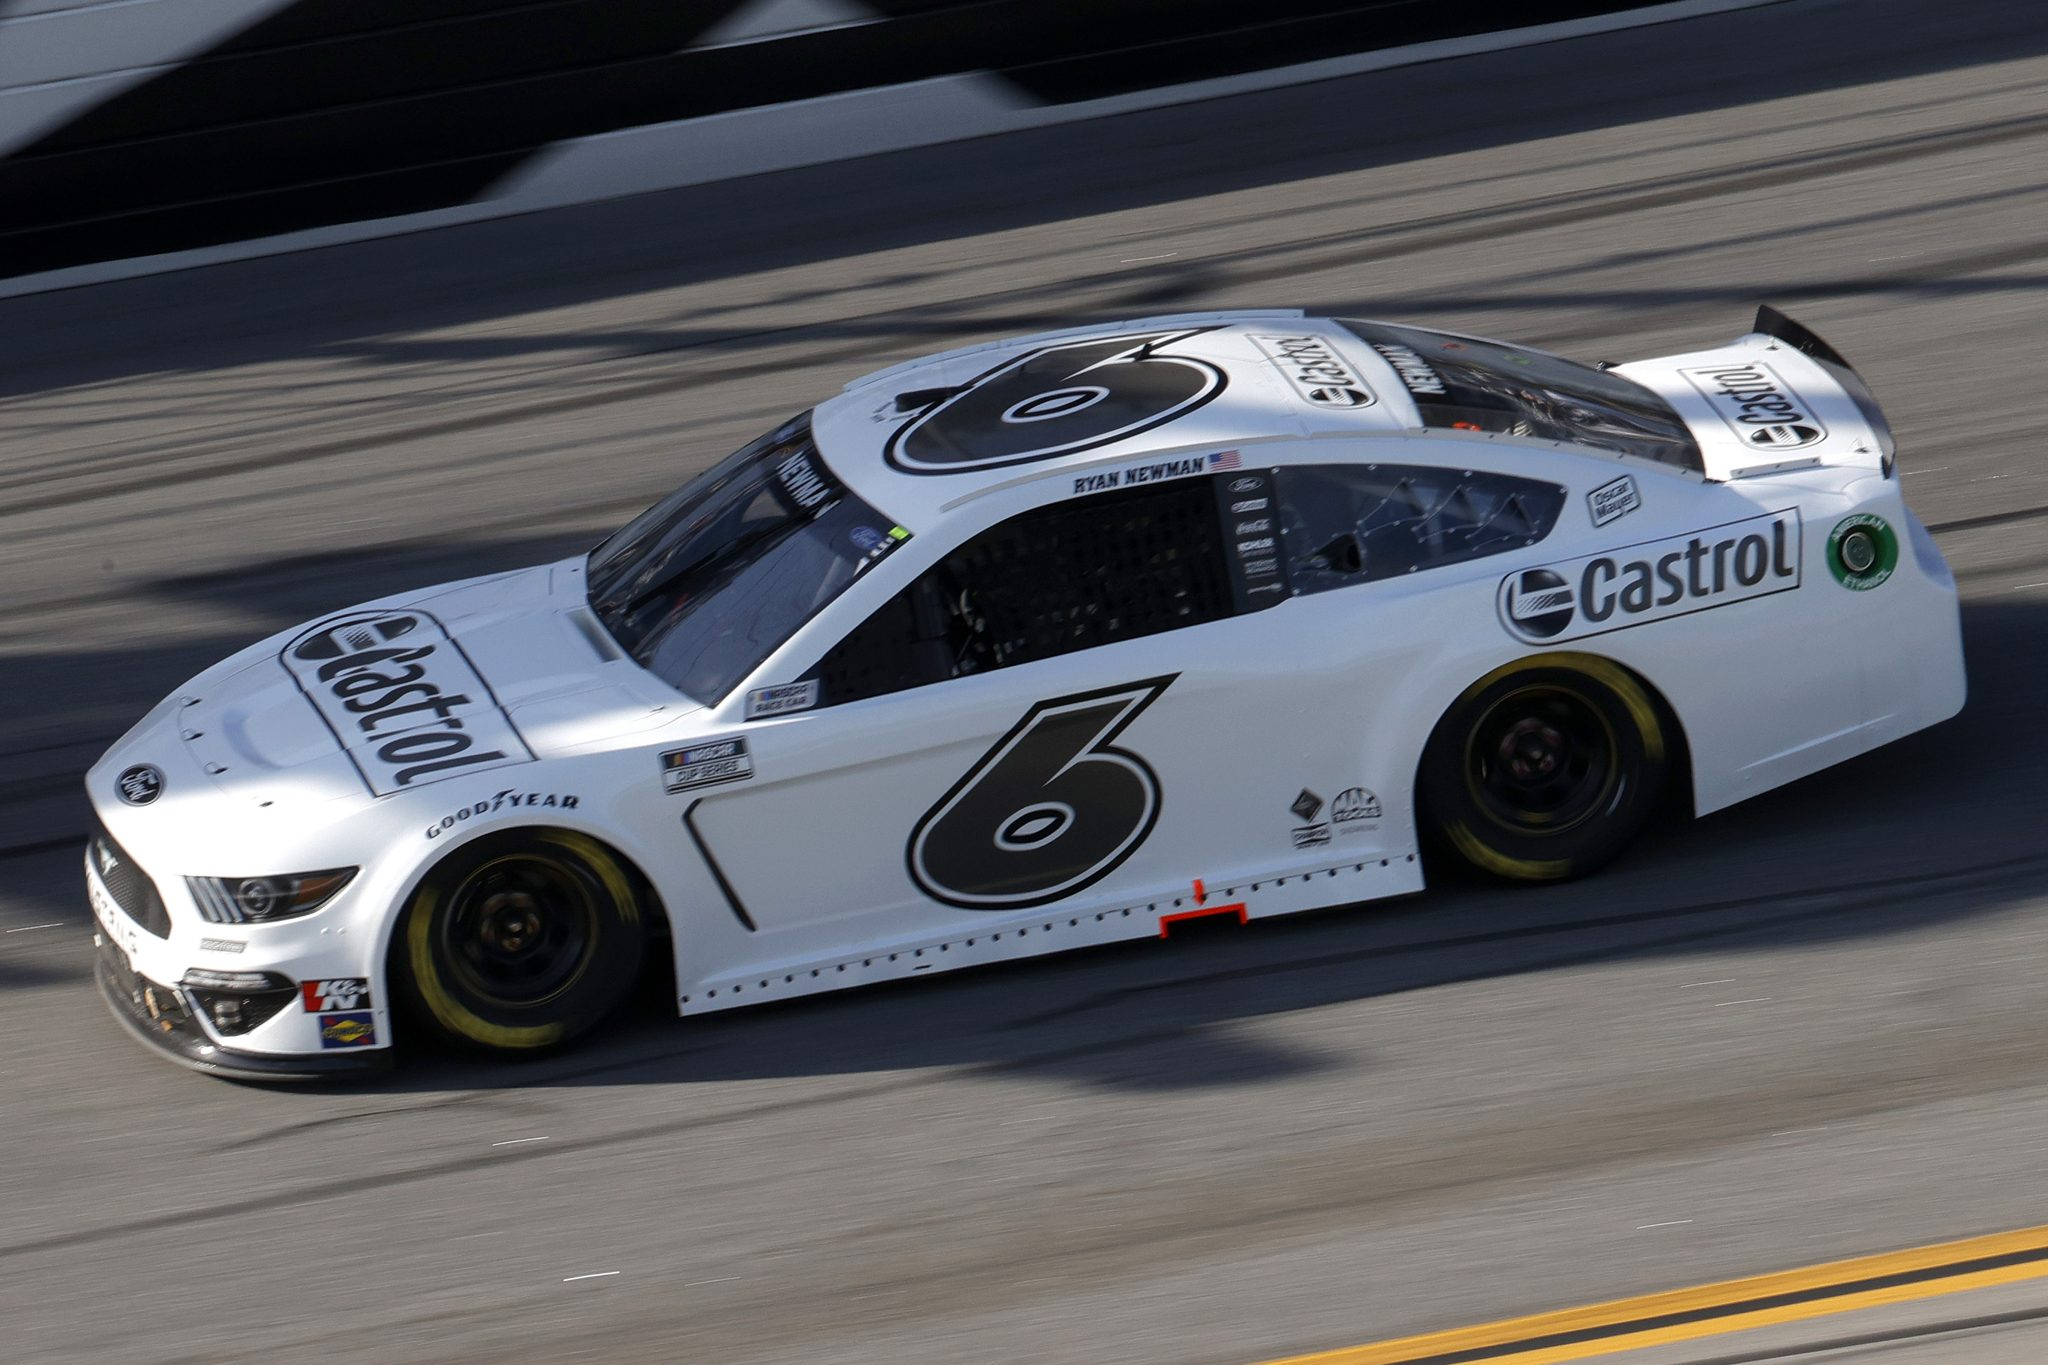 DAYTONA BEACH, FLORIDA - FEBRUARY 21: Ryan Newman, driver of the #6 Ford, drives during the NASCAR Cup Series O'Reilly Auto Parts 253 at Daytona International Speedway on February 21, 2021 in Daytona Beach, Florida. (Photo by Chris Graythen/Getty Images) | Getty Images